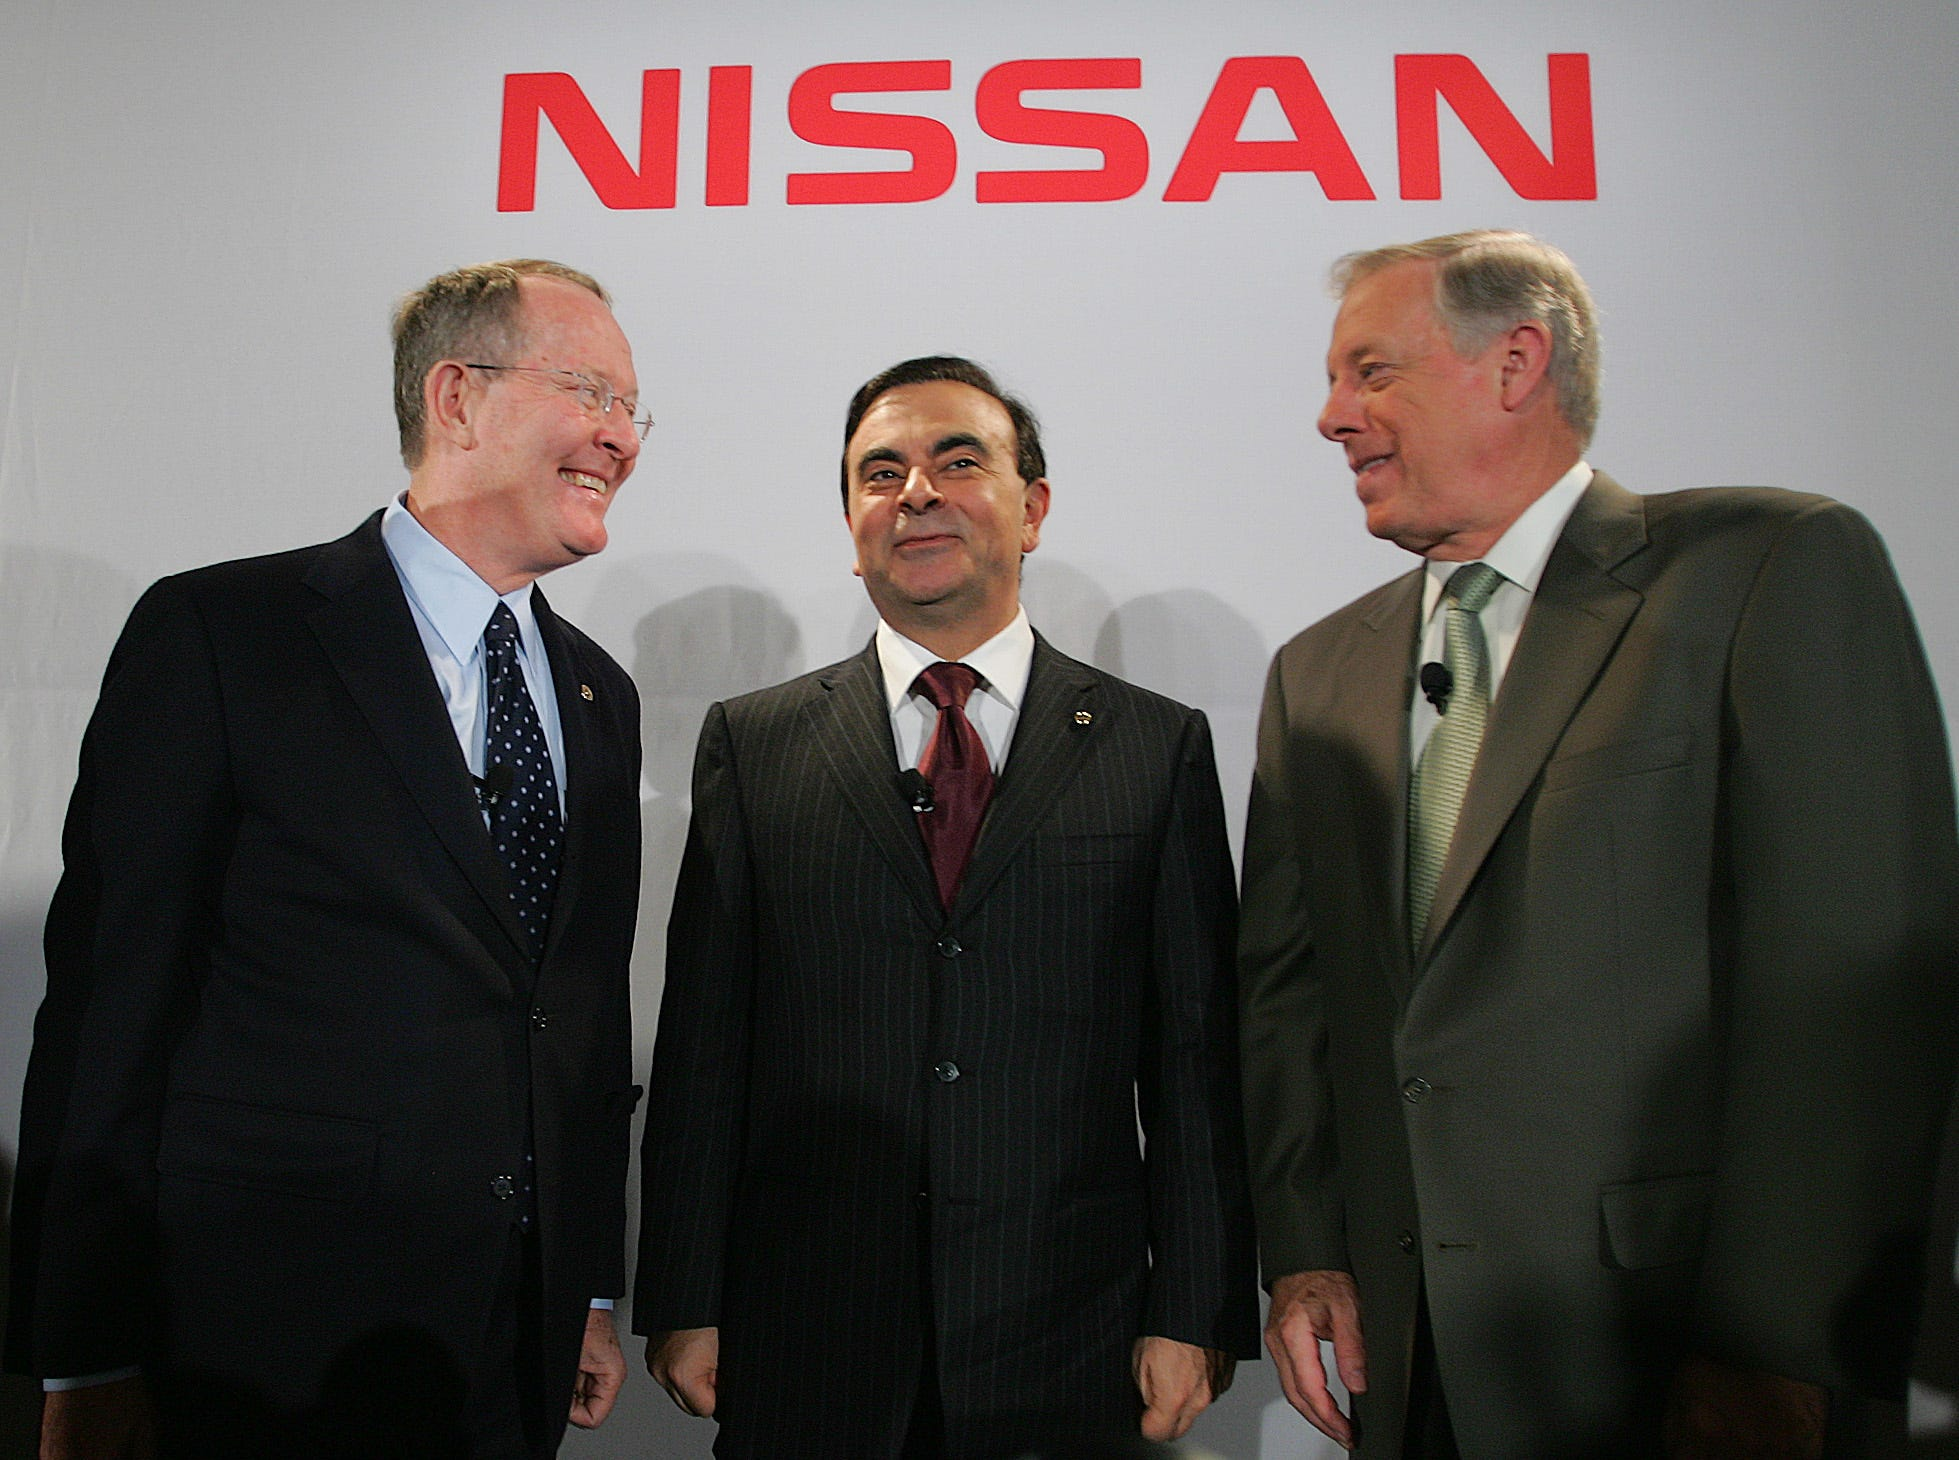 Sen. Lamar Alexander, R-Tenn., left, talks with Nissan President and CEO Carlos Ghosn, center, and  Gov. Phil Bredesen after announcing the relocation of Nissan North American headquarters to middle Tennessee in Nashville, Tenn., Thursday, Nov. 10, 2005.